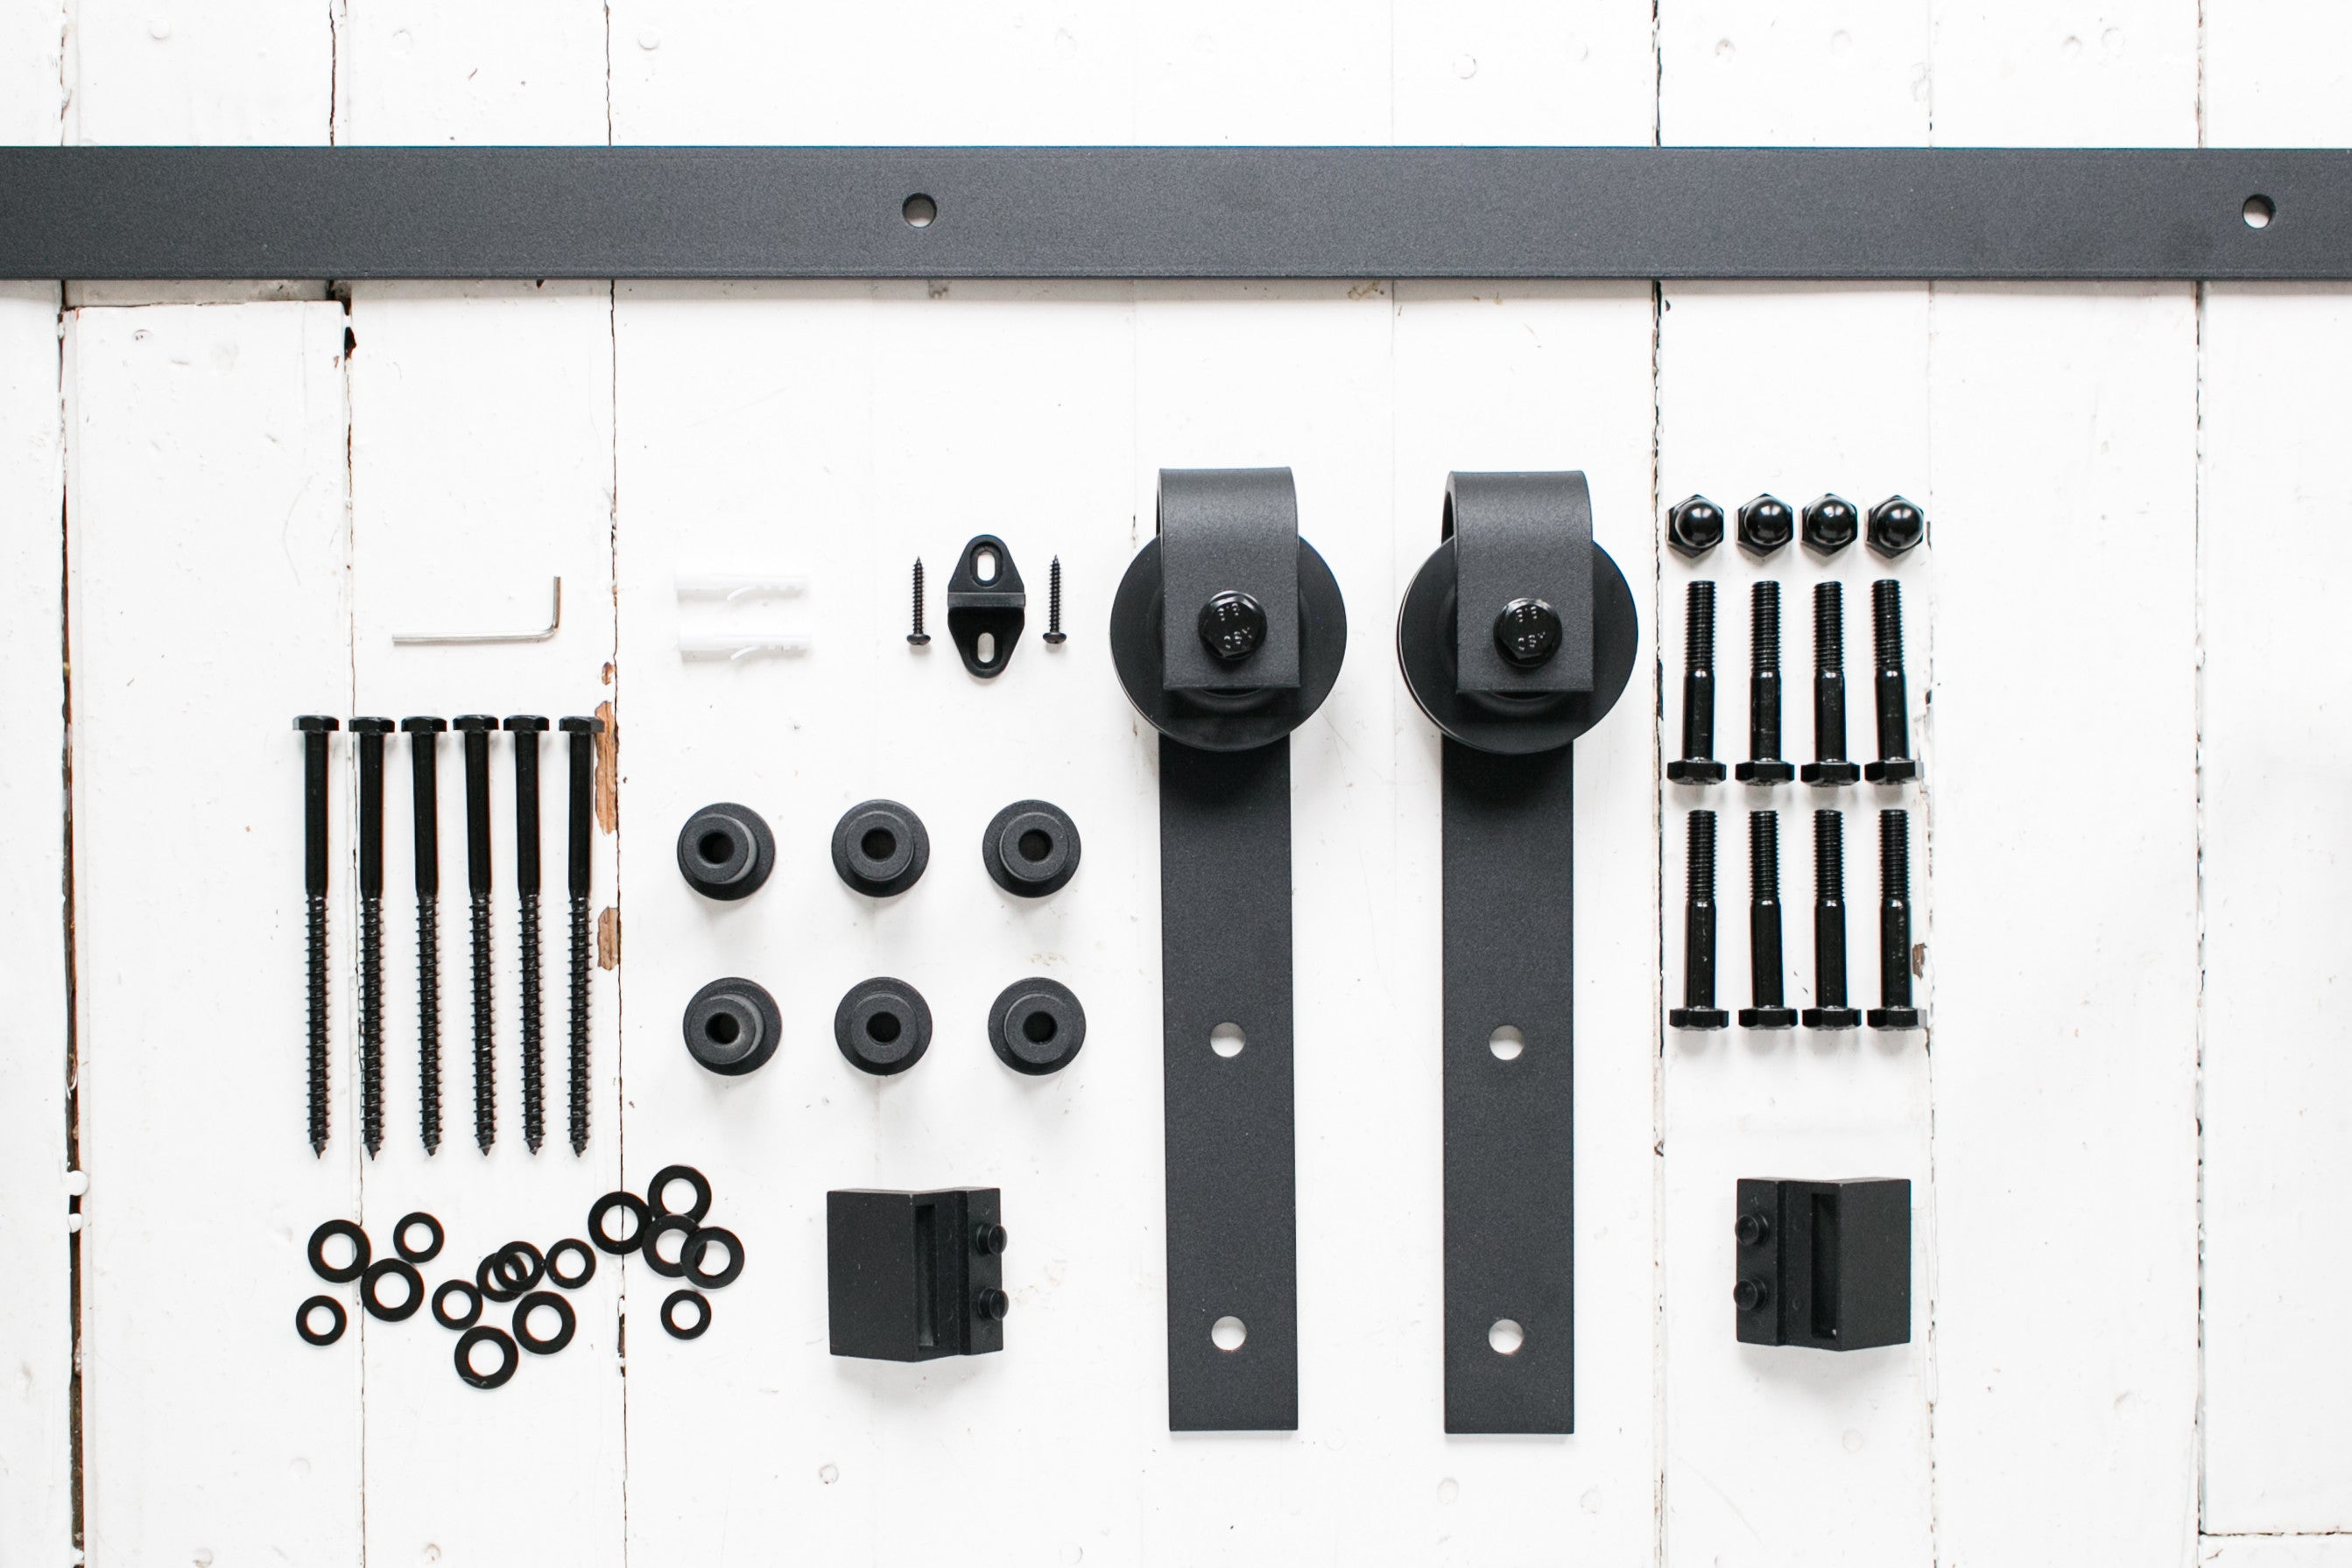 8 Foot Barn Door Hardware Kit